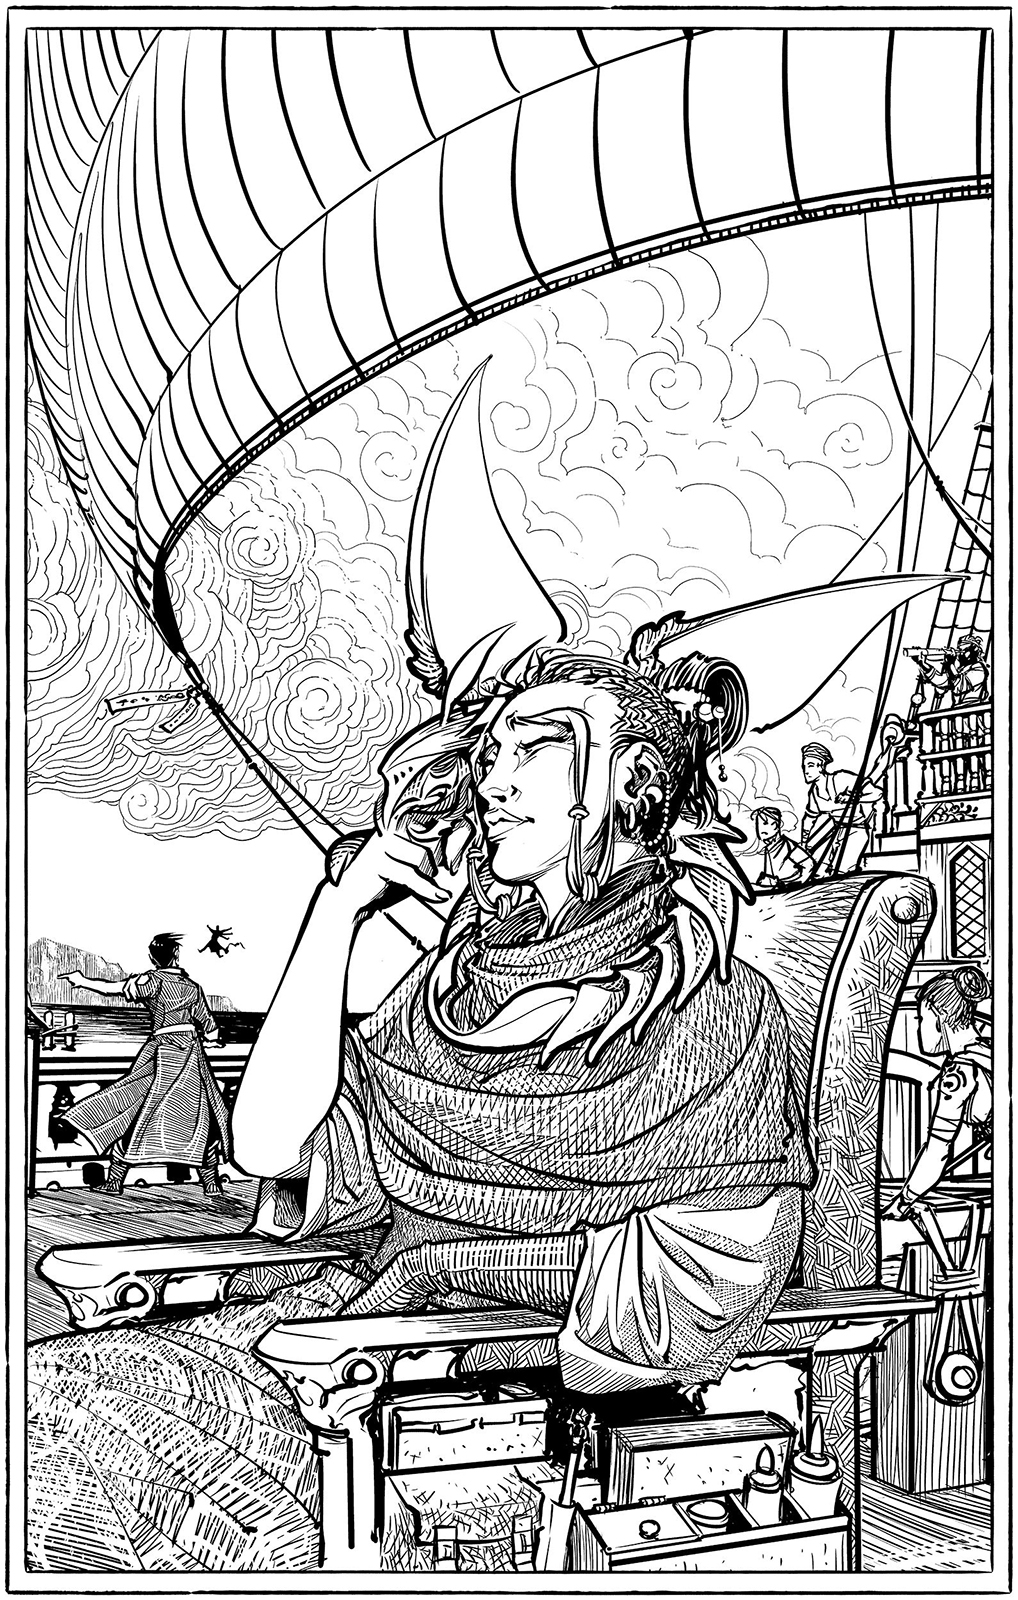 In the foreground, a young woman sits in a chair aboard a sailing ship. She is reaching up to scratch under the chin of a winged creature with an exoskeleton body, which is draped around her shoulders. In the background, sailors move about and a man is seen at the ship railing, gesturing to a small humanoid creature that is hovering in the air.